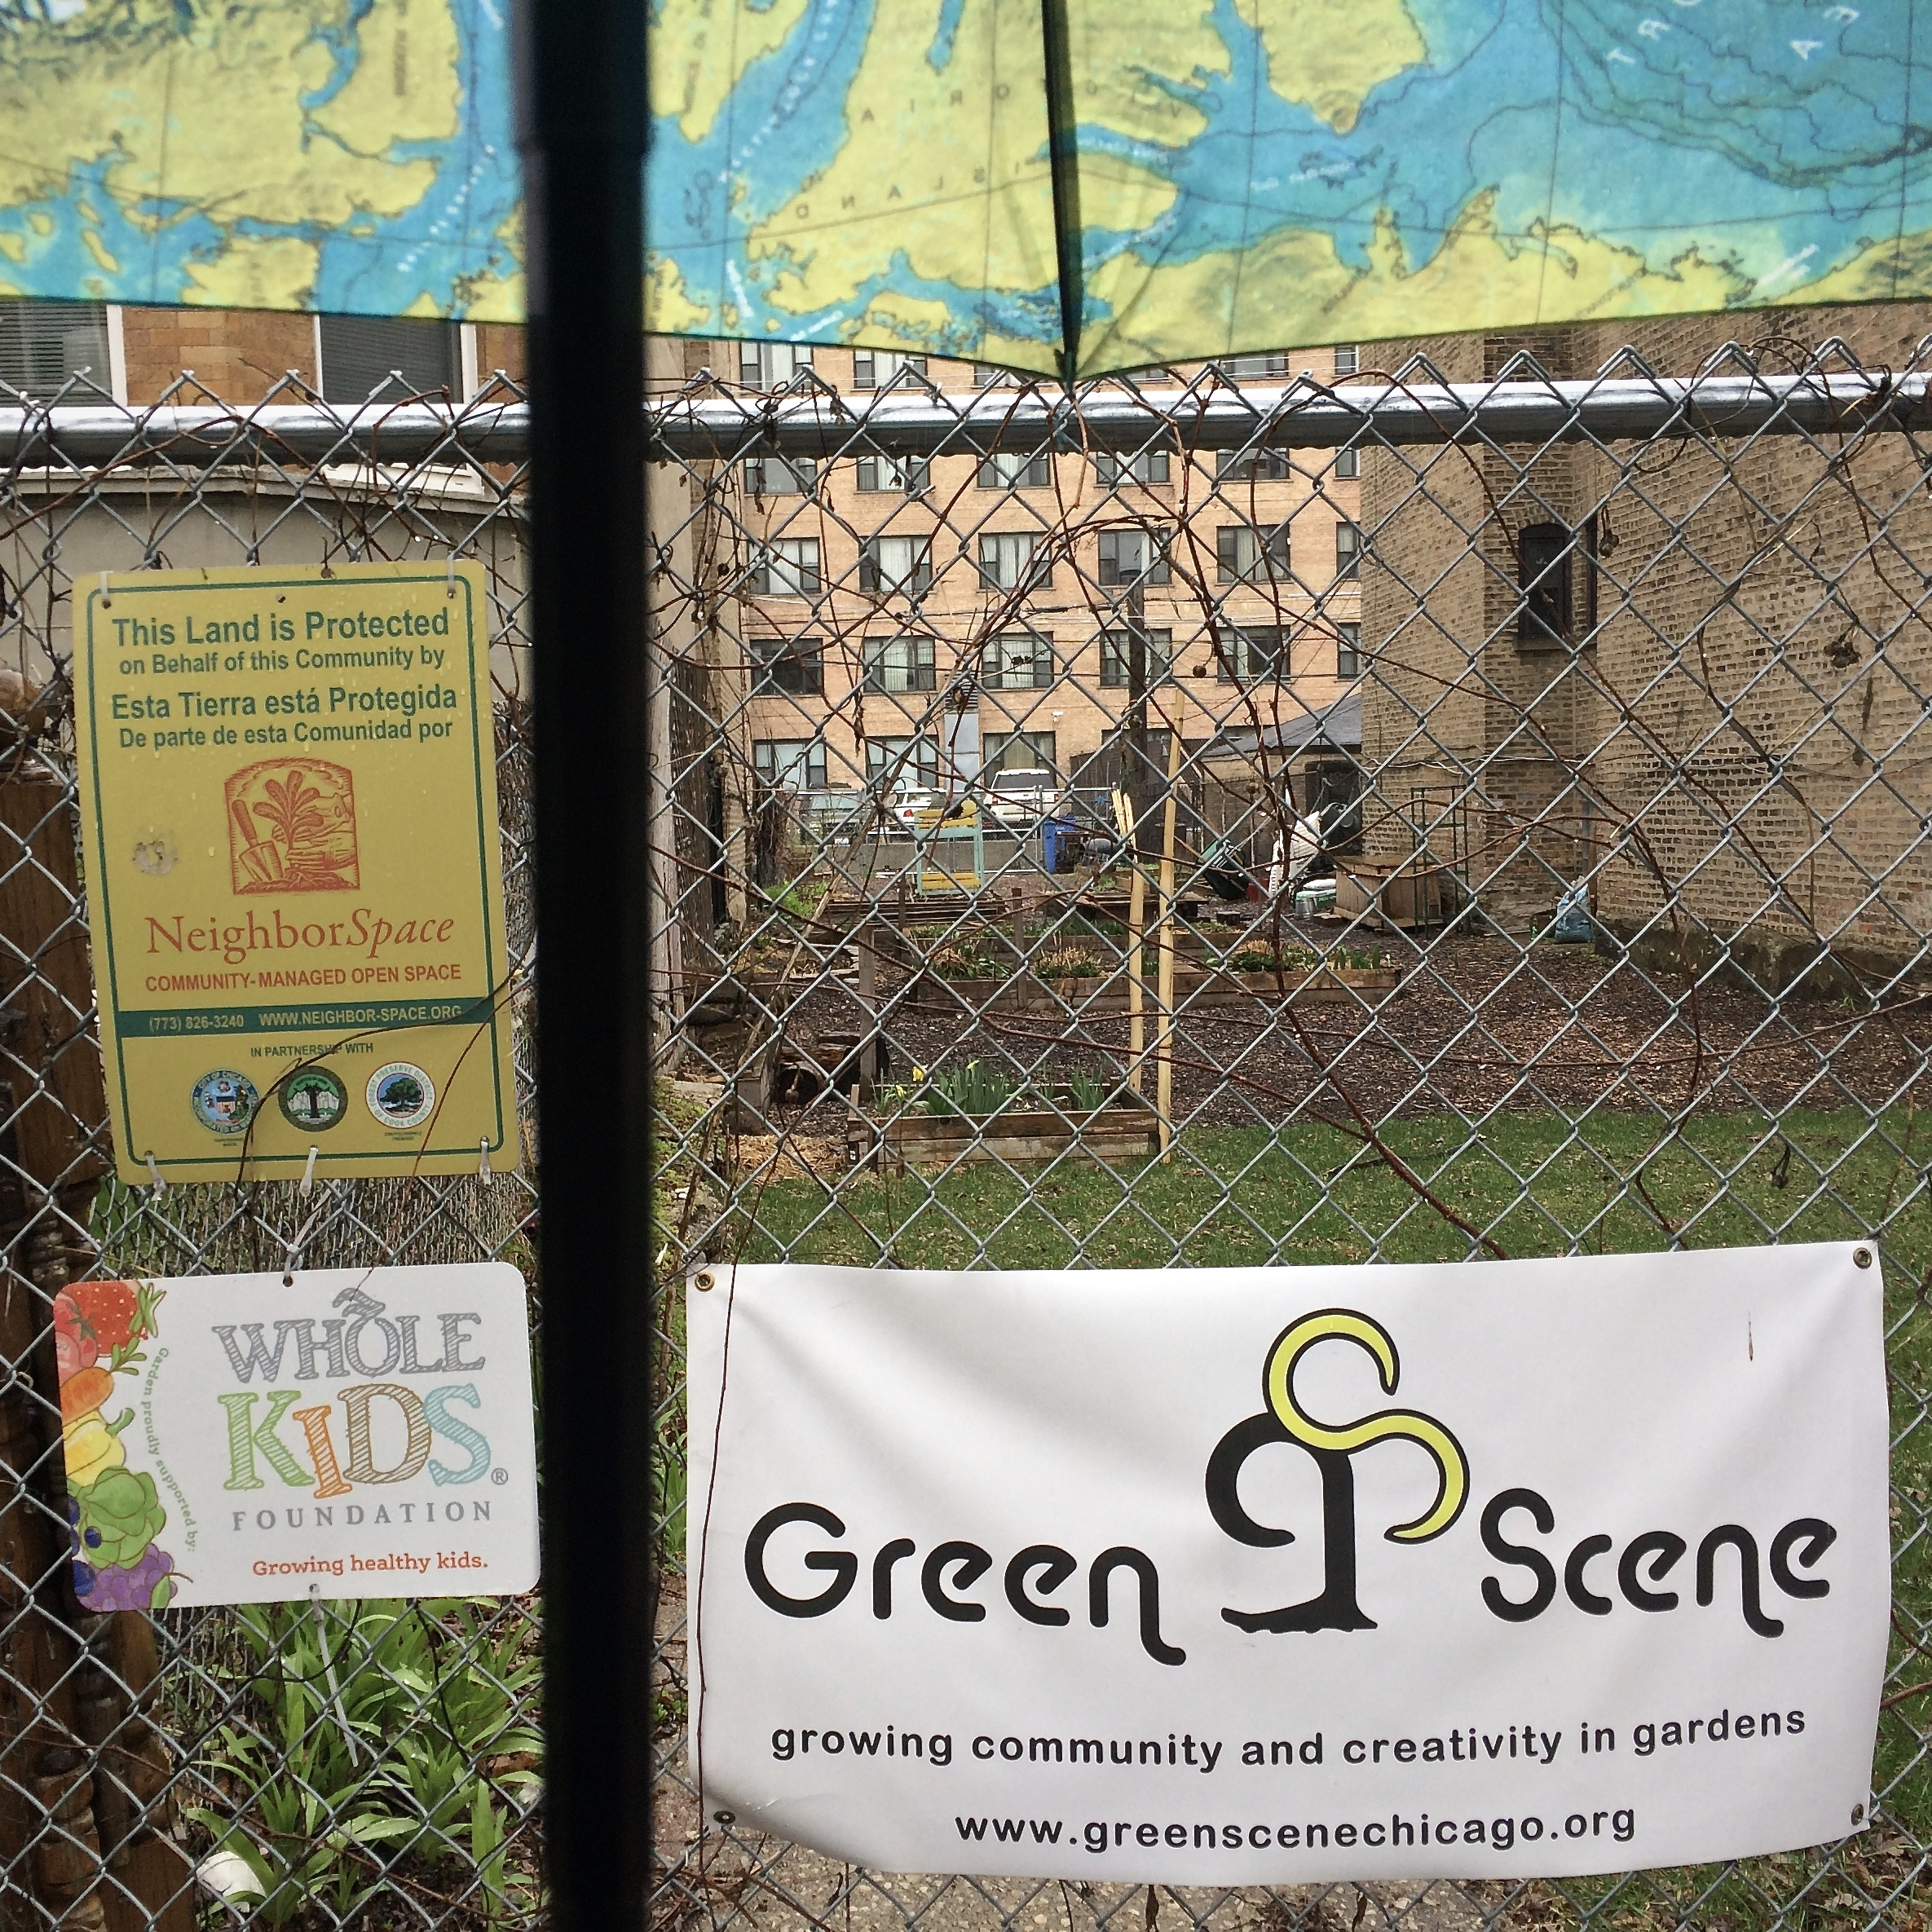 #aprilshowers #communitygreenspace #Uptown #YIMBY